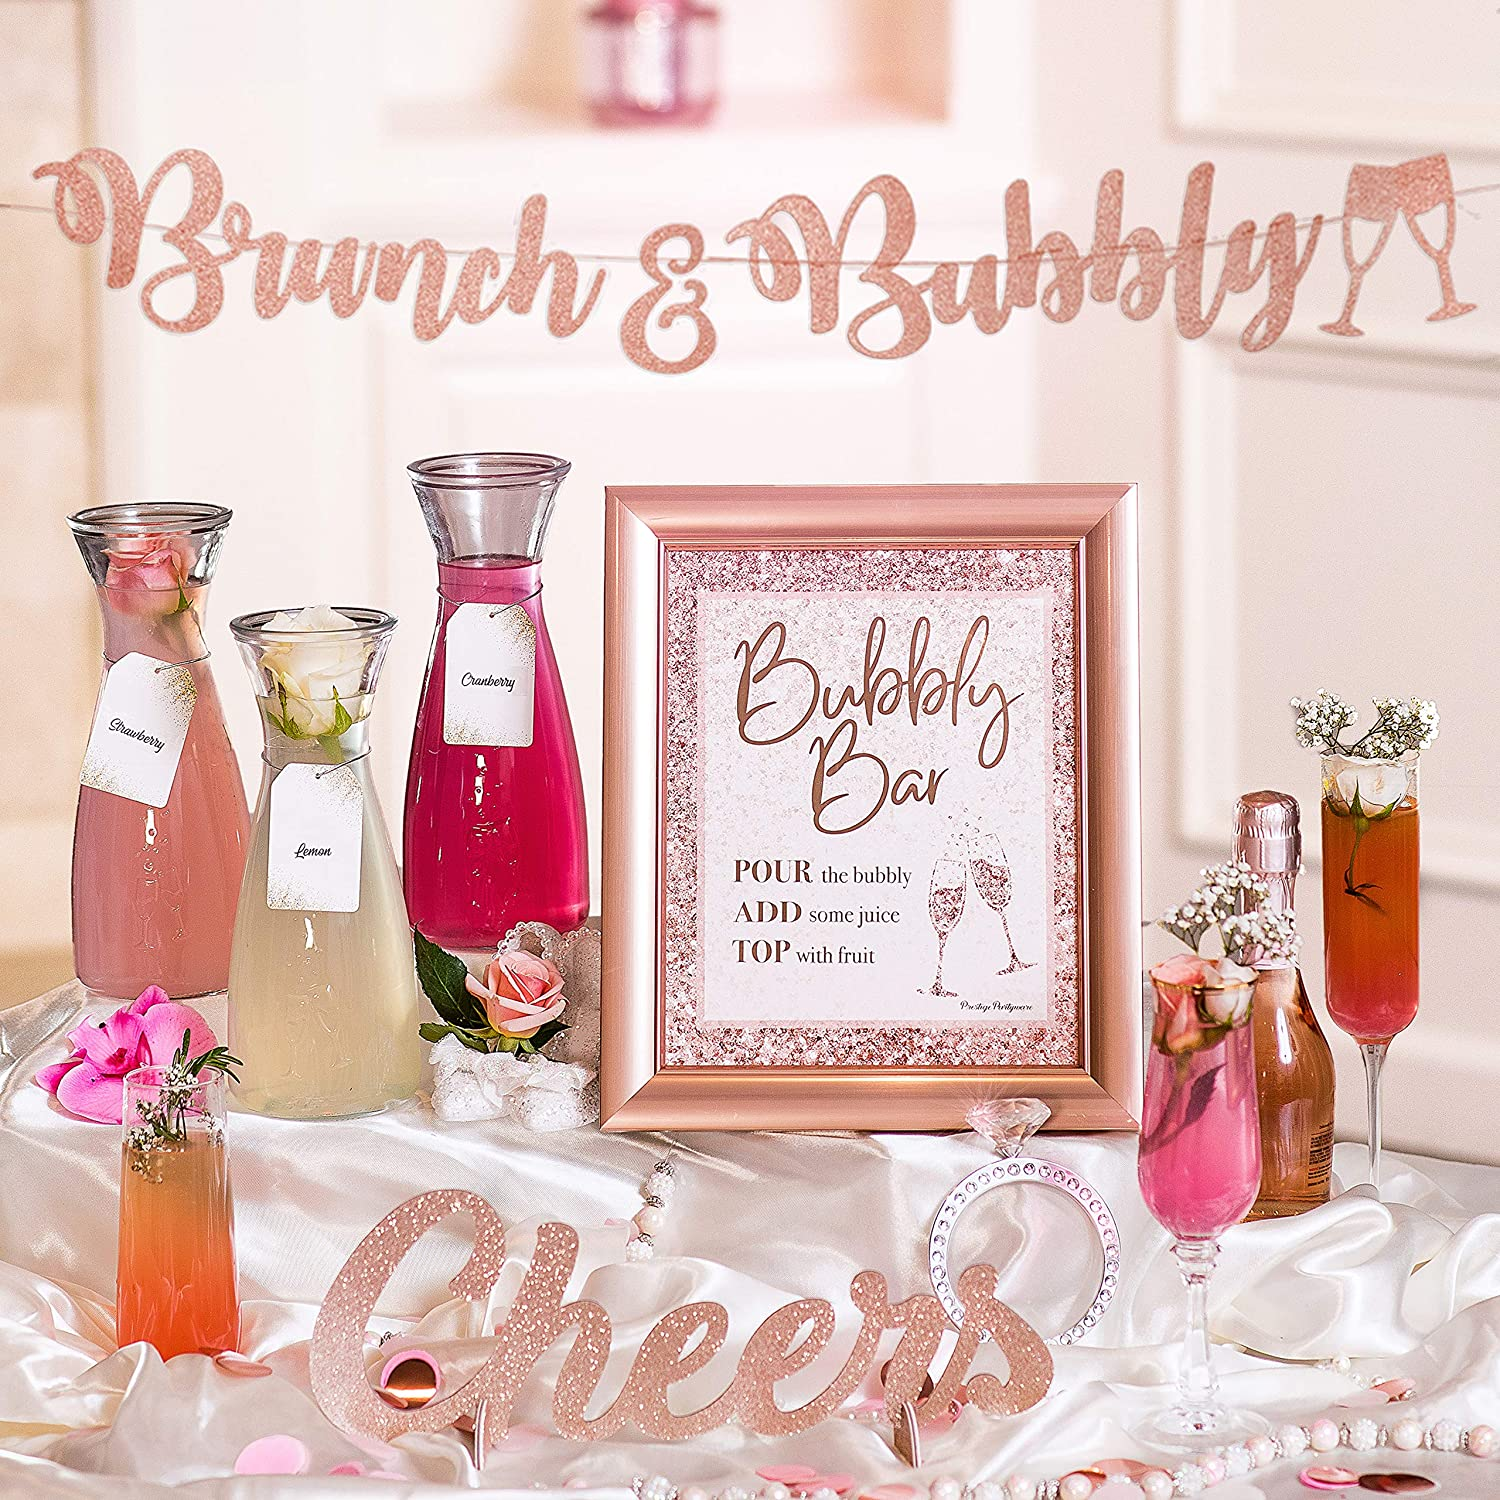 Mimosa Bar Kit | Bachelorette Party Decorations, Rose Gold Birthday Decorations, Blush Pink Bridal Shower Banner, Princess Baby Shower for Girl, Snowflakes Girl Baby Shower, Bridal Brunch Decor (pink)